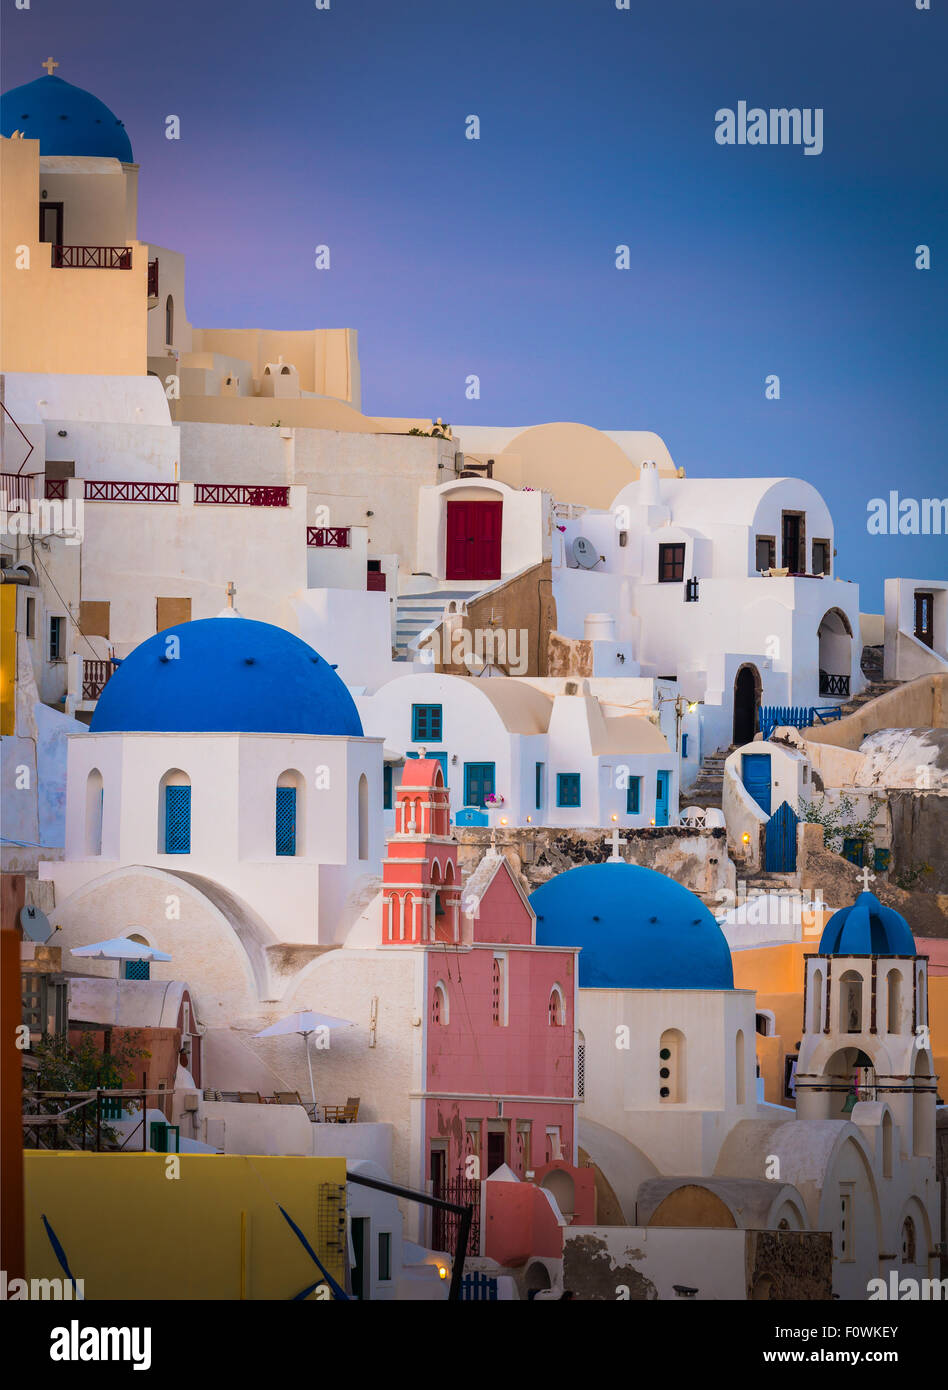 Iconic sunset in the town of Oia on the greek island Santorini (Thera) - Stock Image